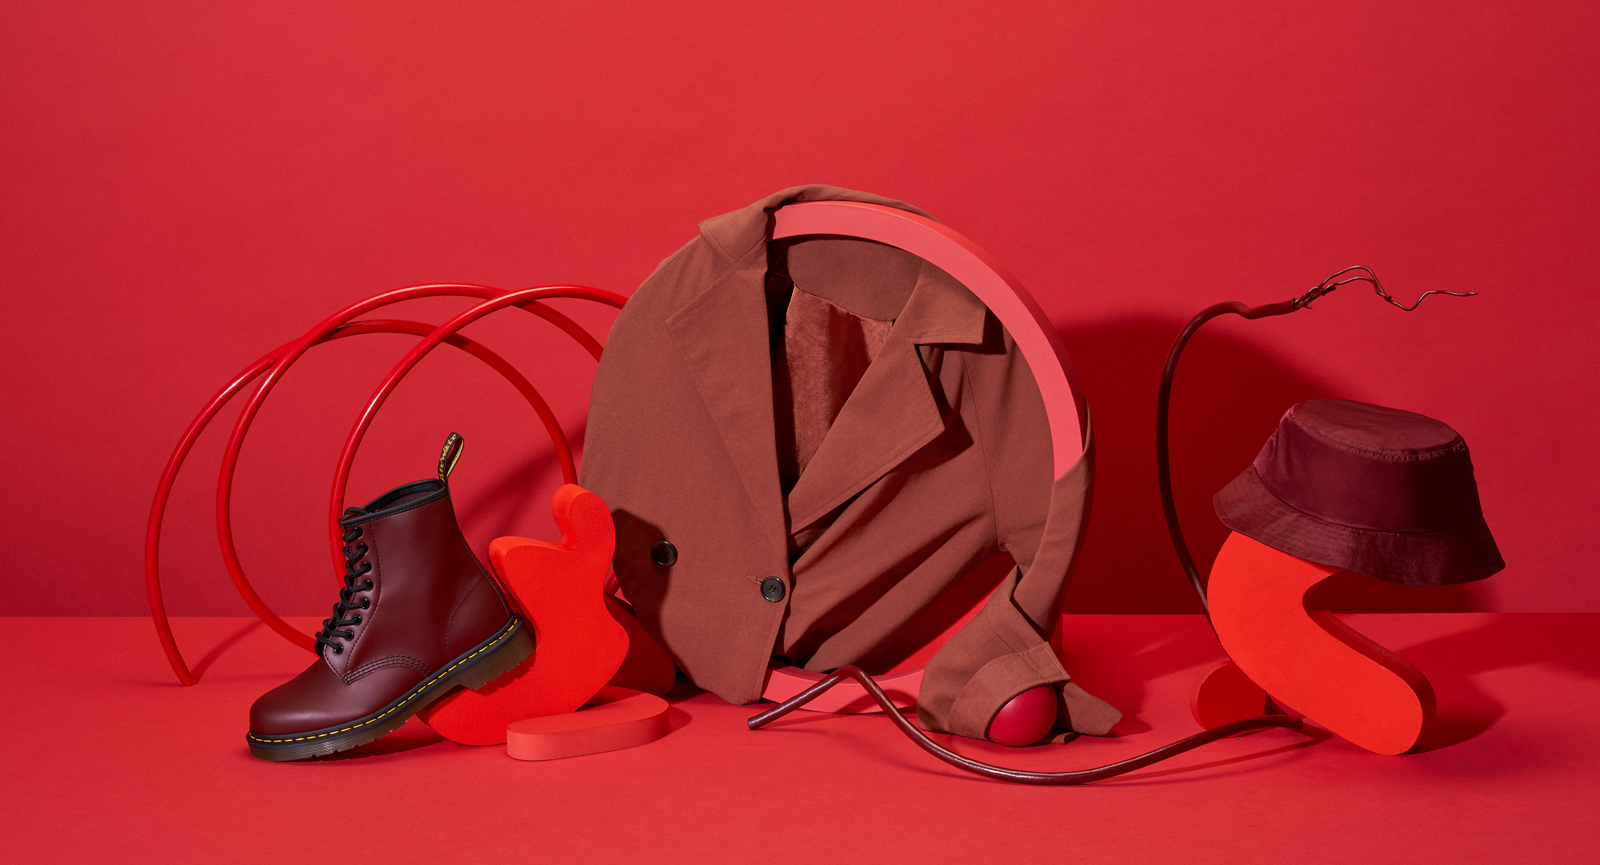 Red abstract still life photograph for Zalando's Sale Campaign